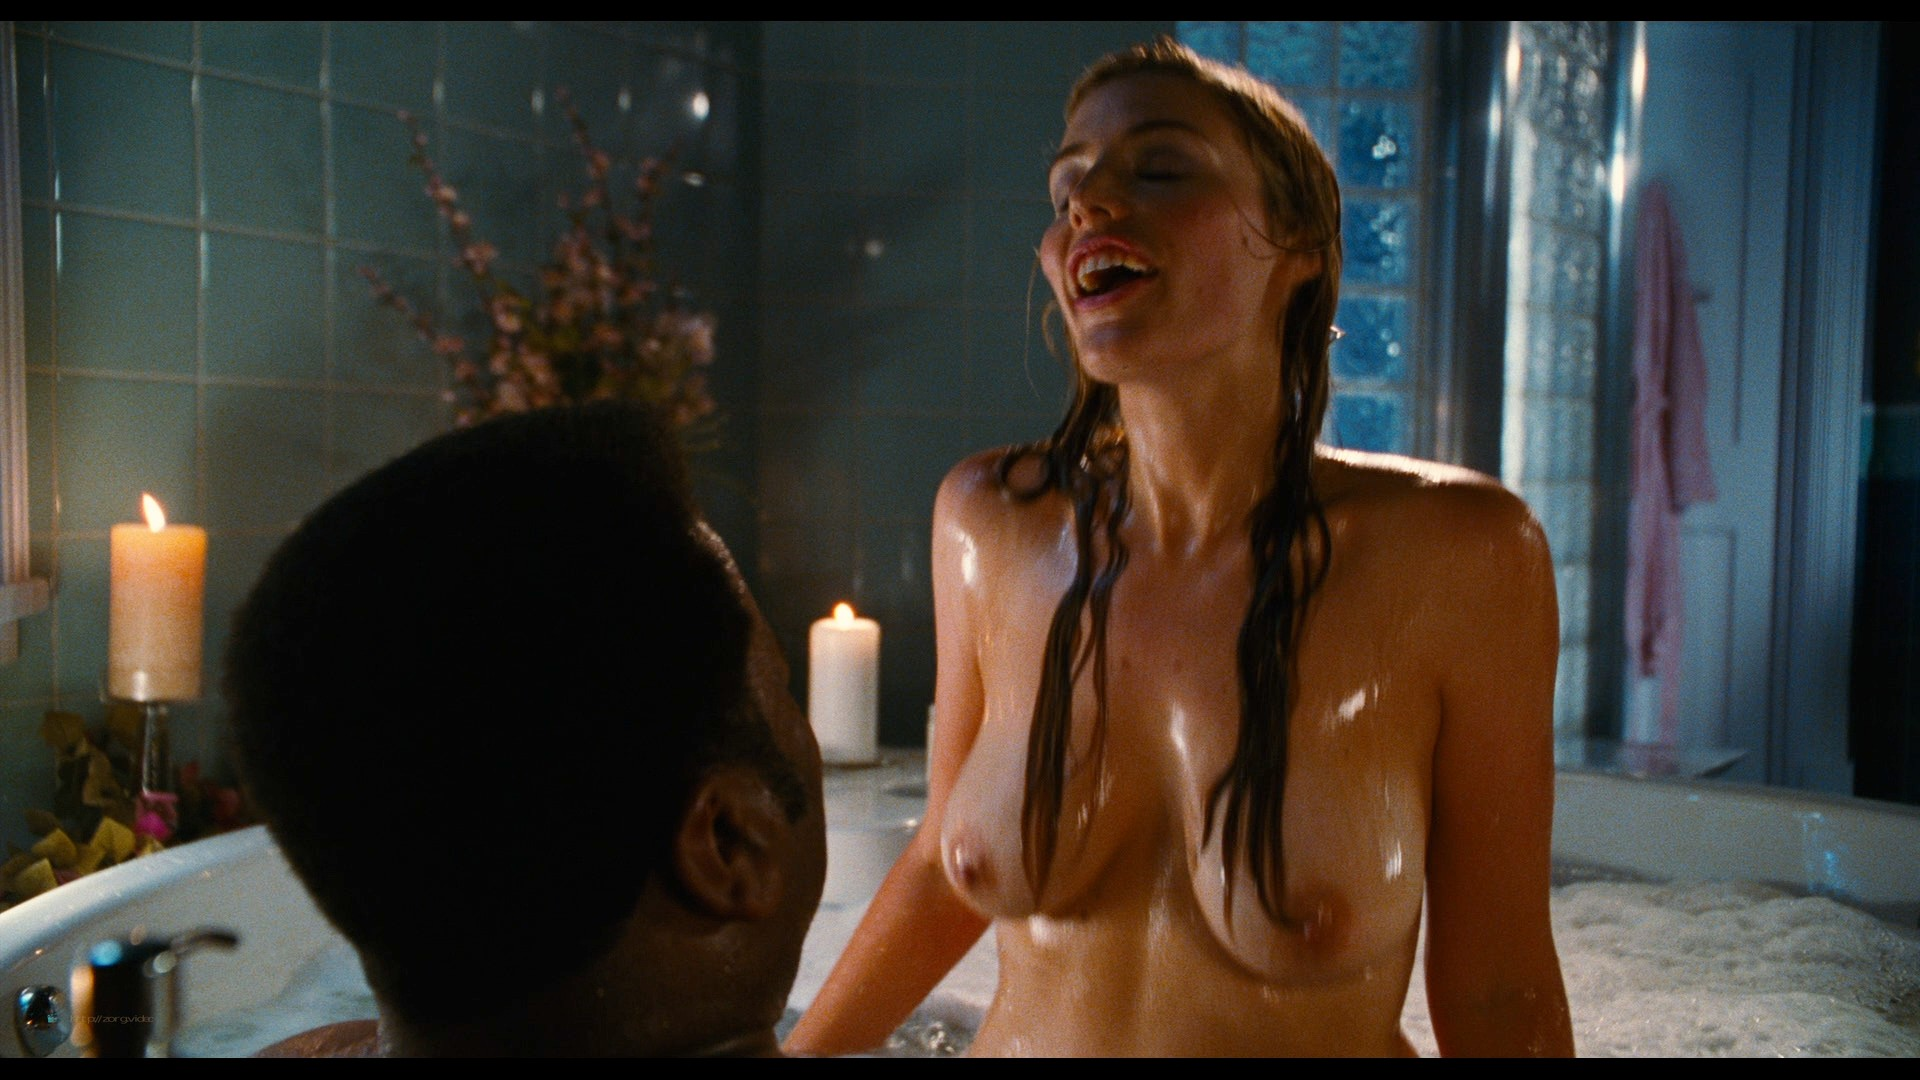 Jessica Pare nude Crystal Lowe topless Lyndsy Fonseca hot and sexy - Hot Tub Time Machine (2010) HD 1080p BluRay REMUX (10)